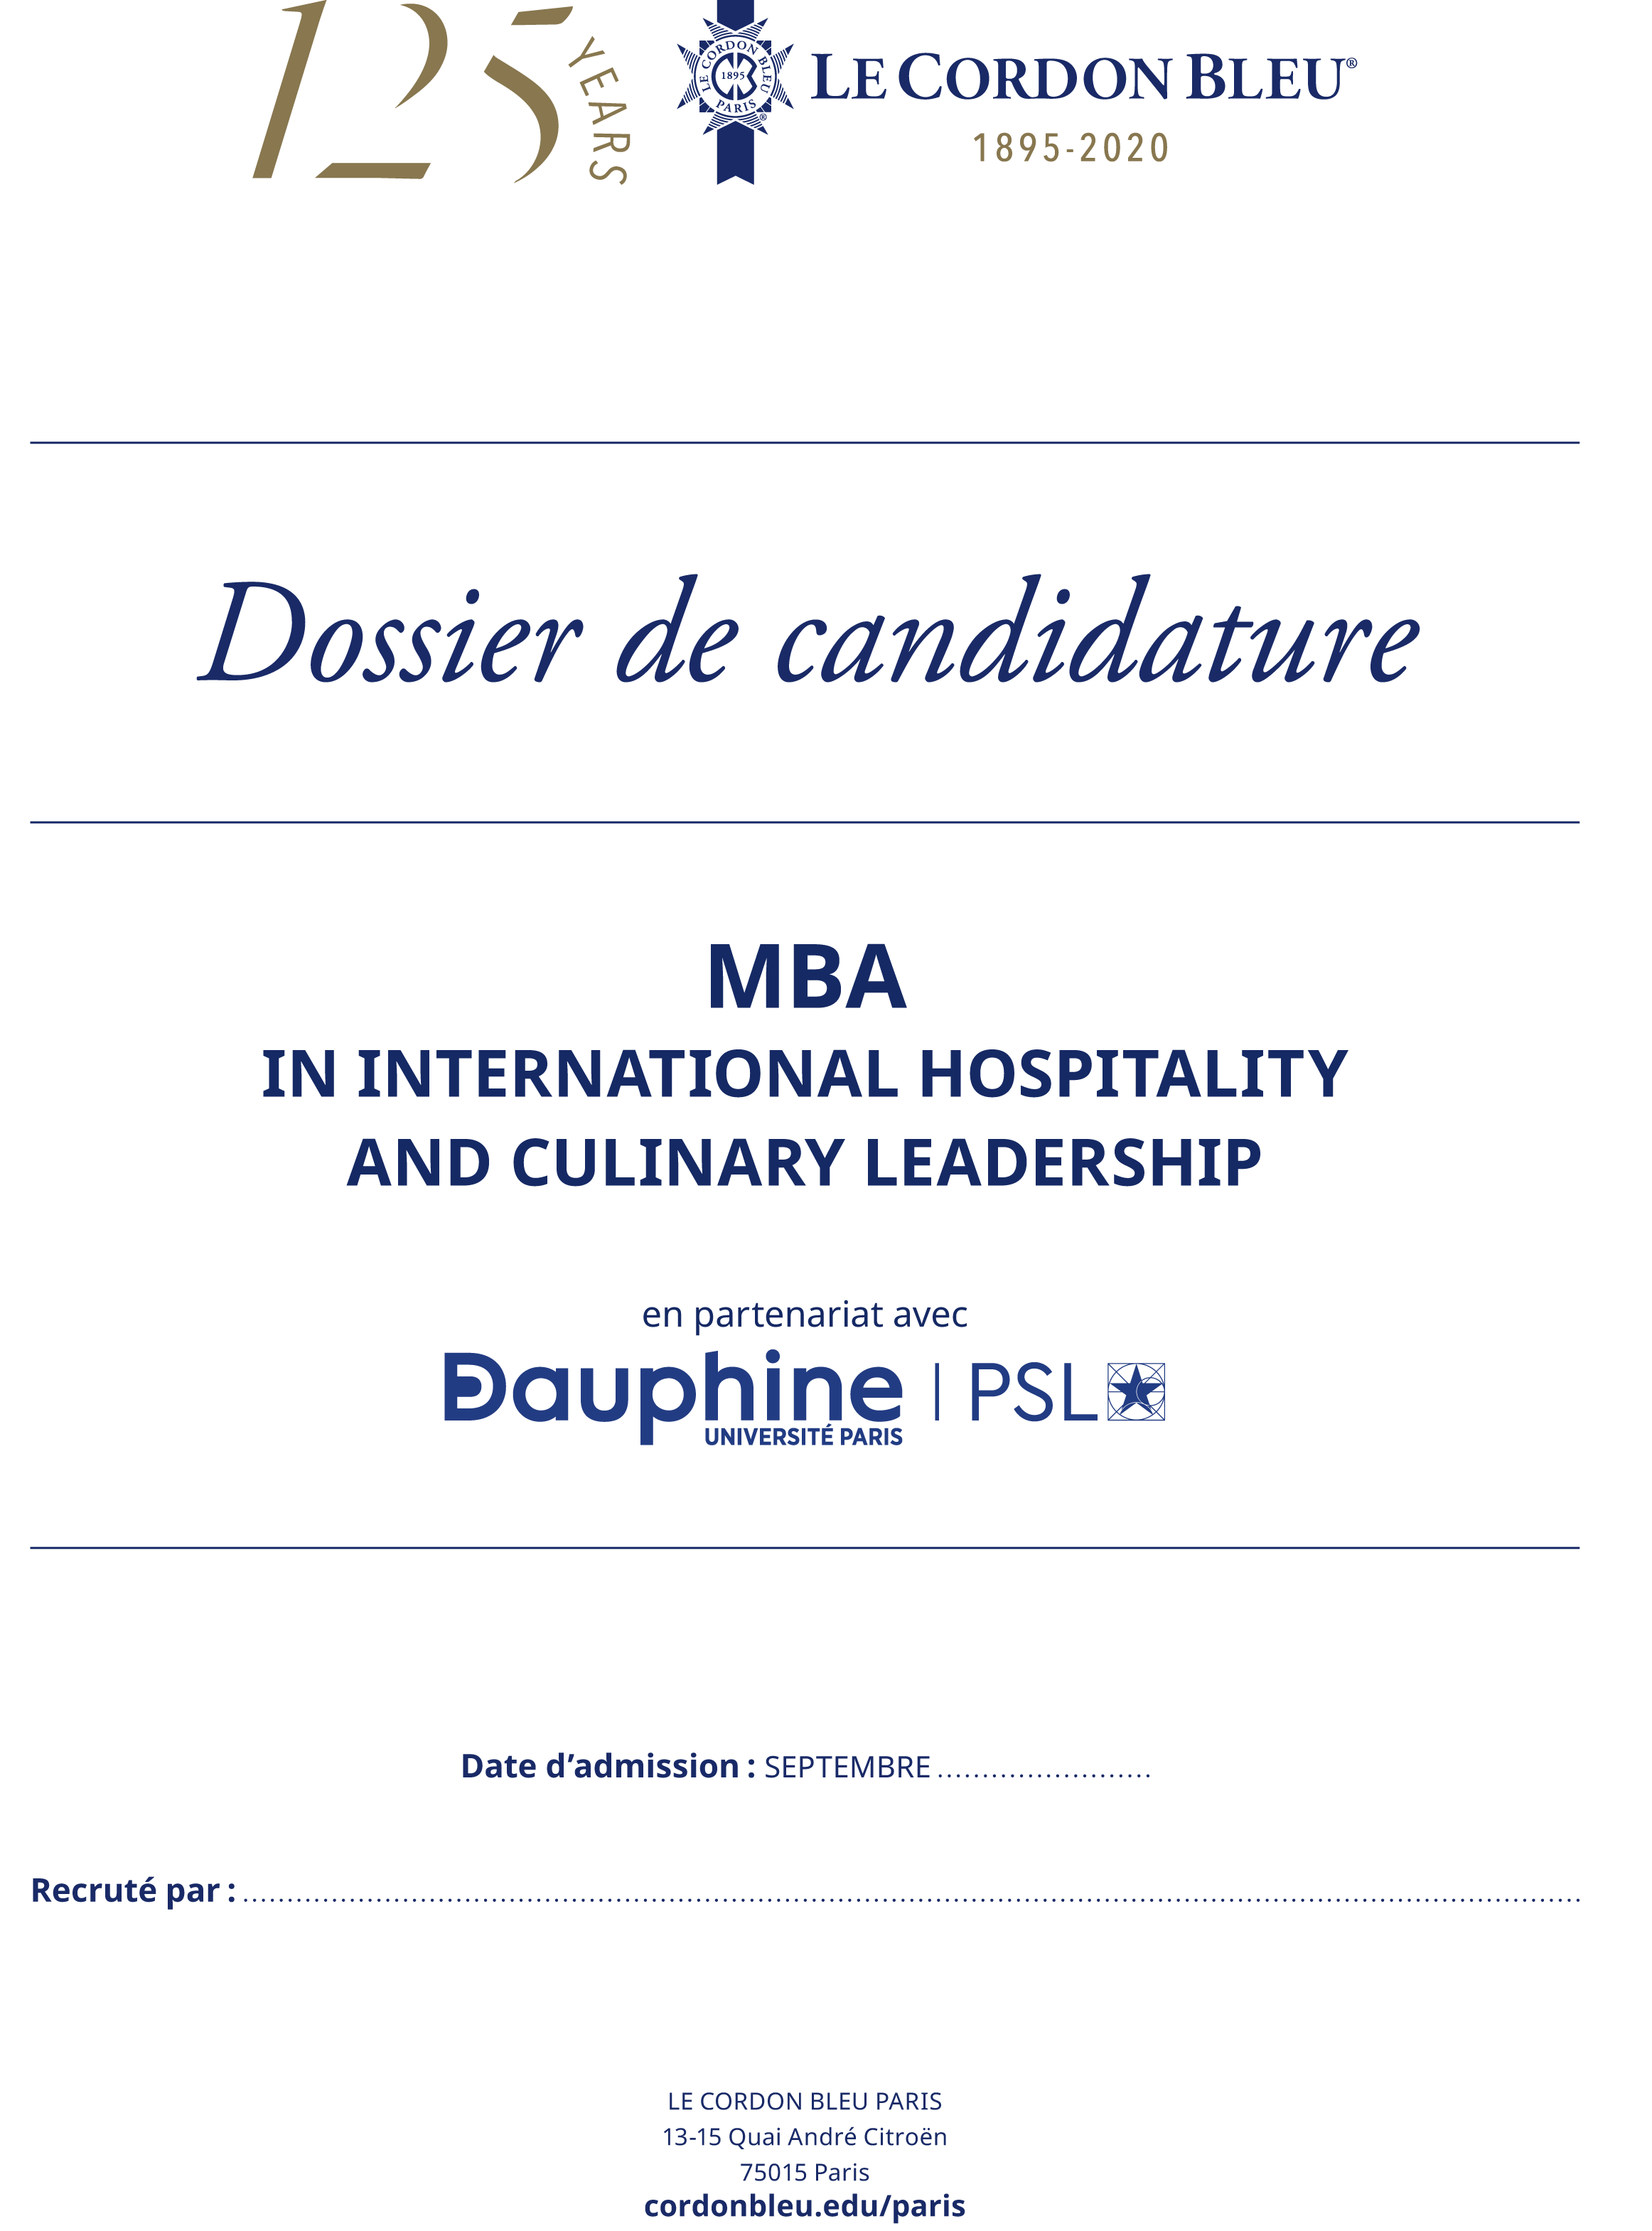 Dossier de candidature - MBA in International Hospitality and Culinary Leadership